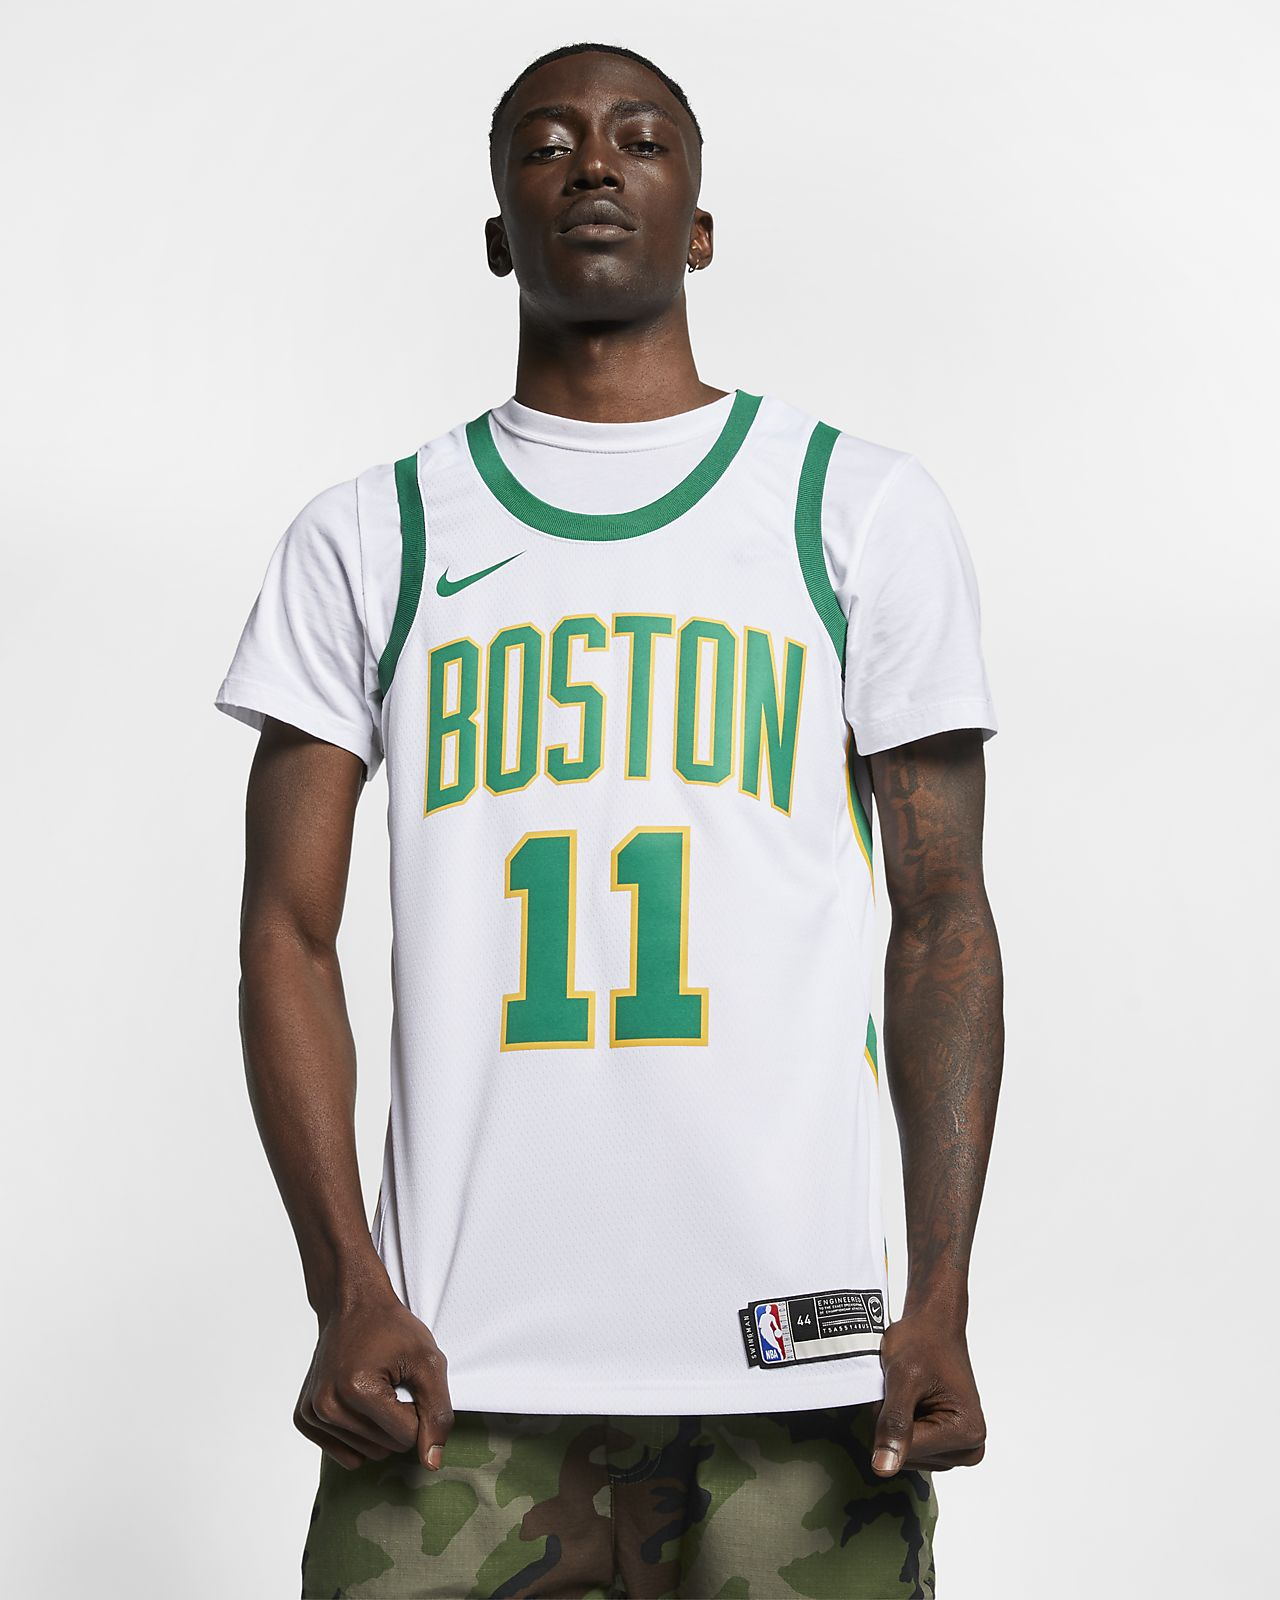 competitive price 0aec2 45e3c celtics sleeved jersey